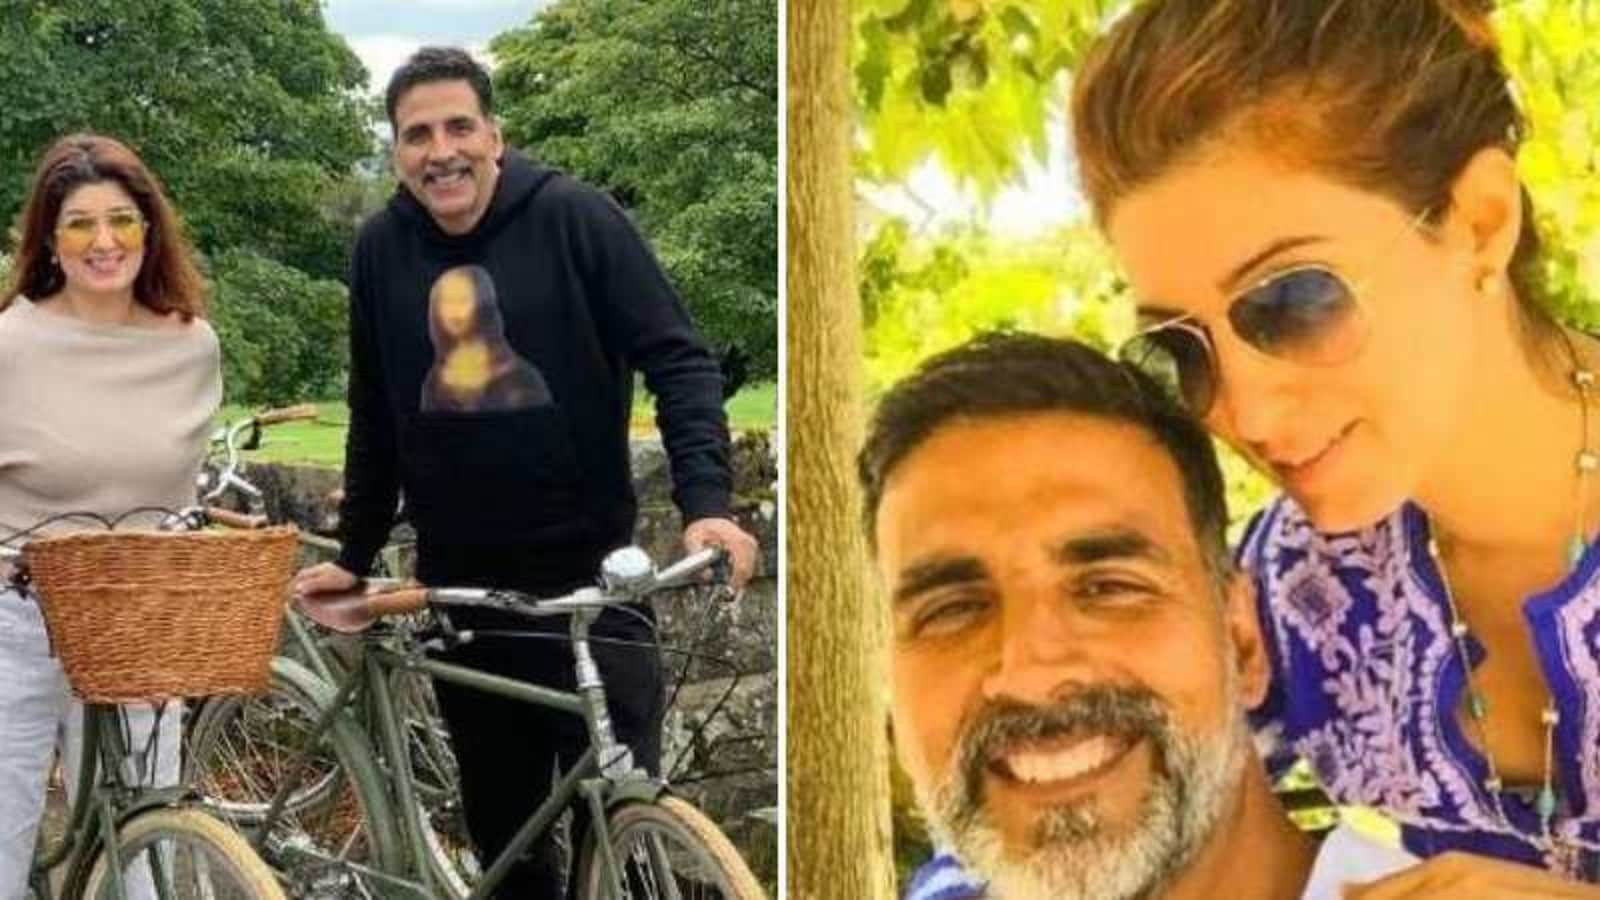 Akshay Kumar wishes Twinkle Khanna on anniversary, she jokes: 'You are the beauty and the brawn in this partnership' | Hindustan Times